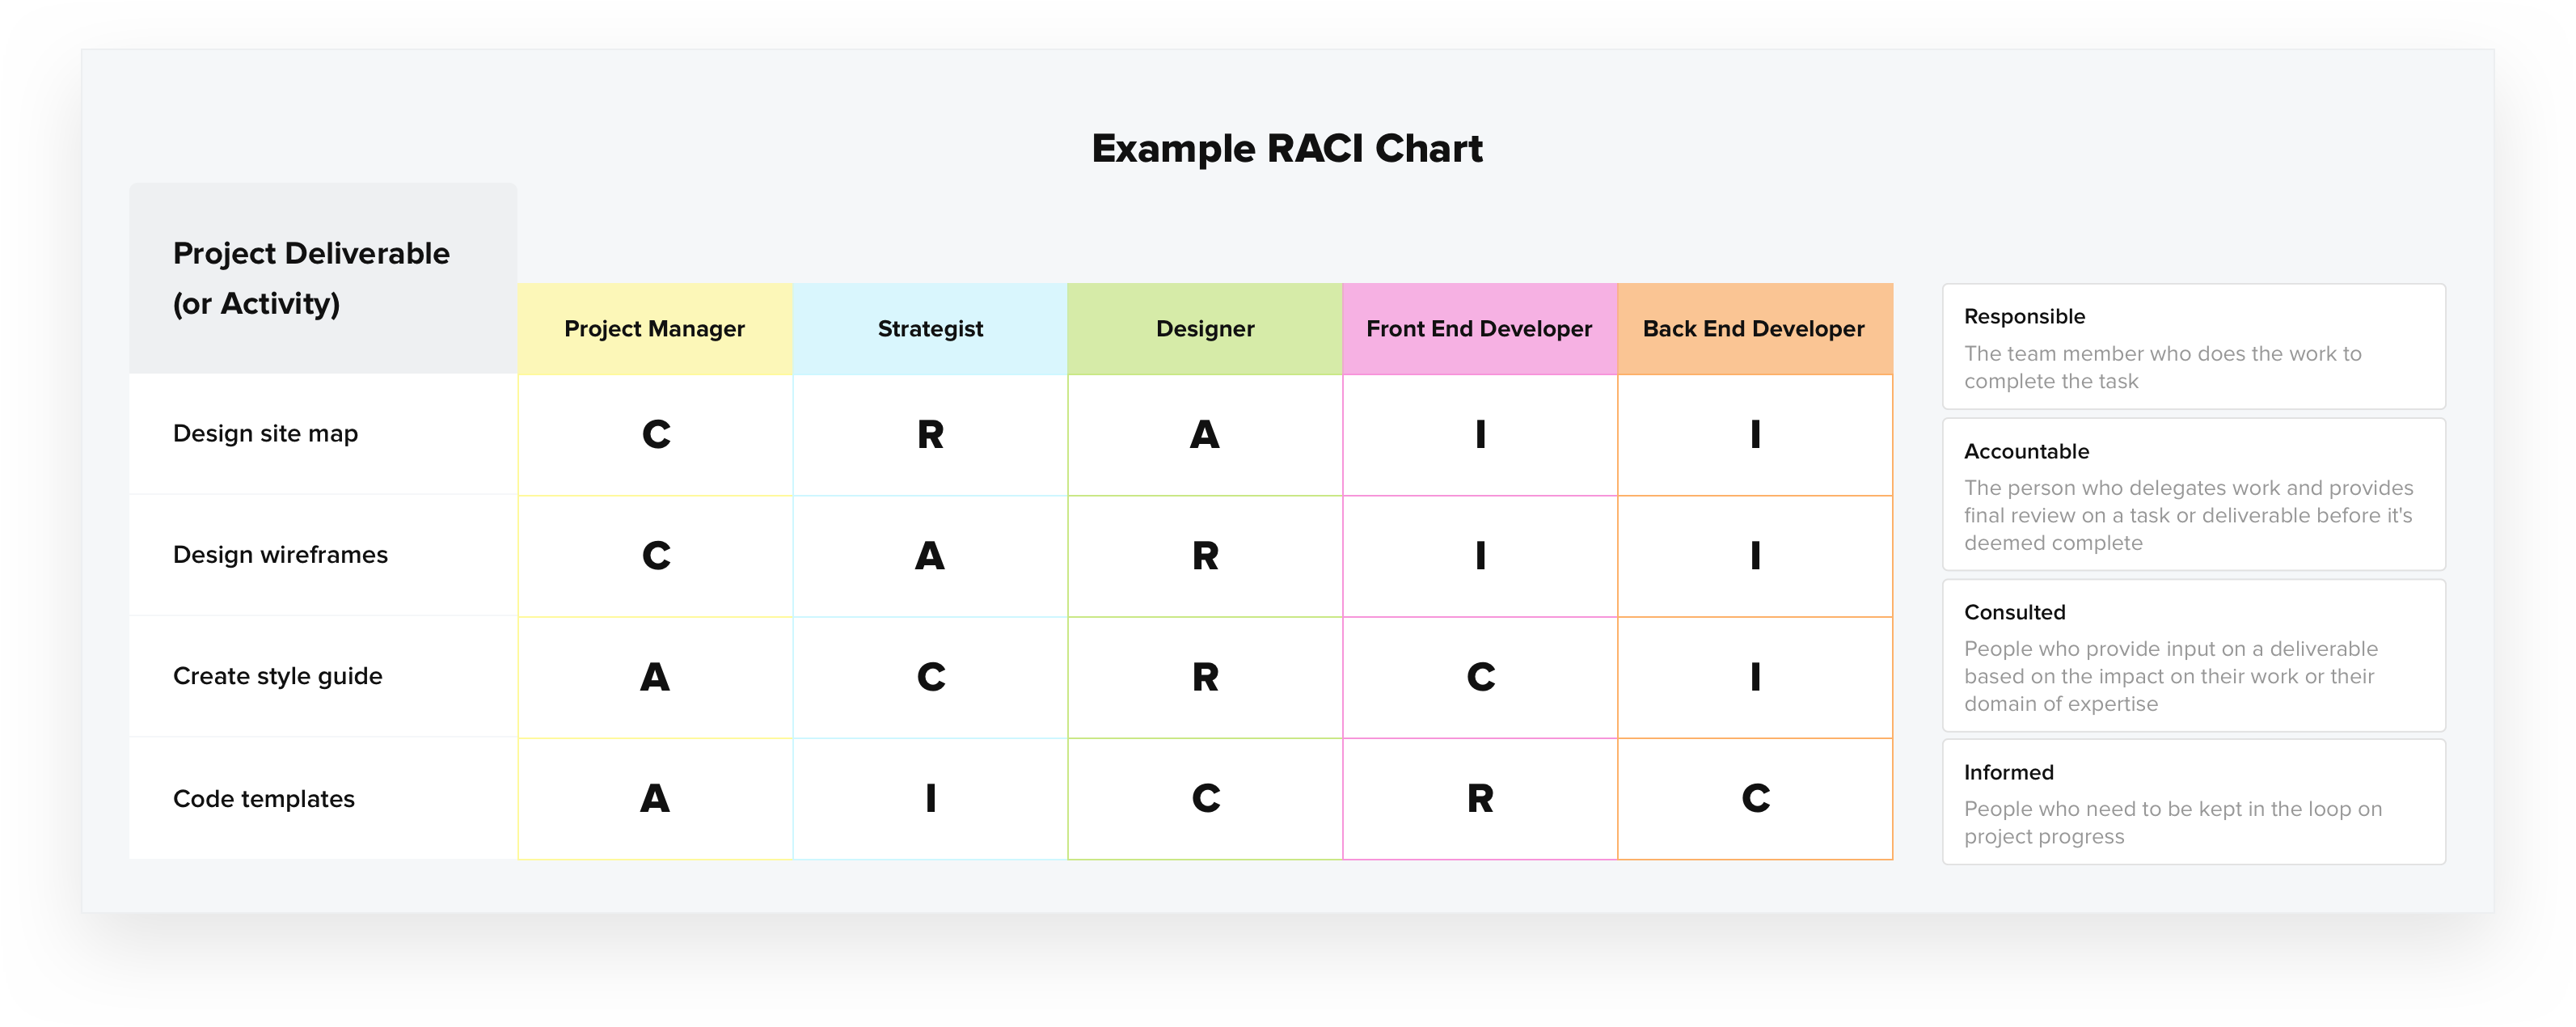 RACi matrix example